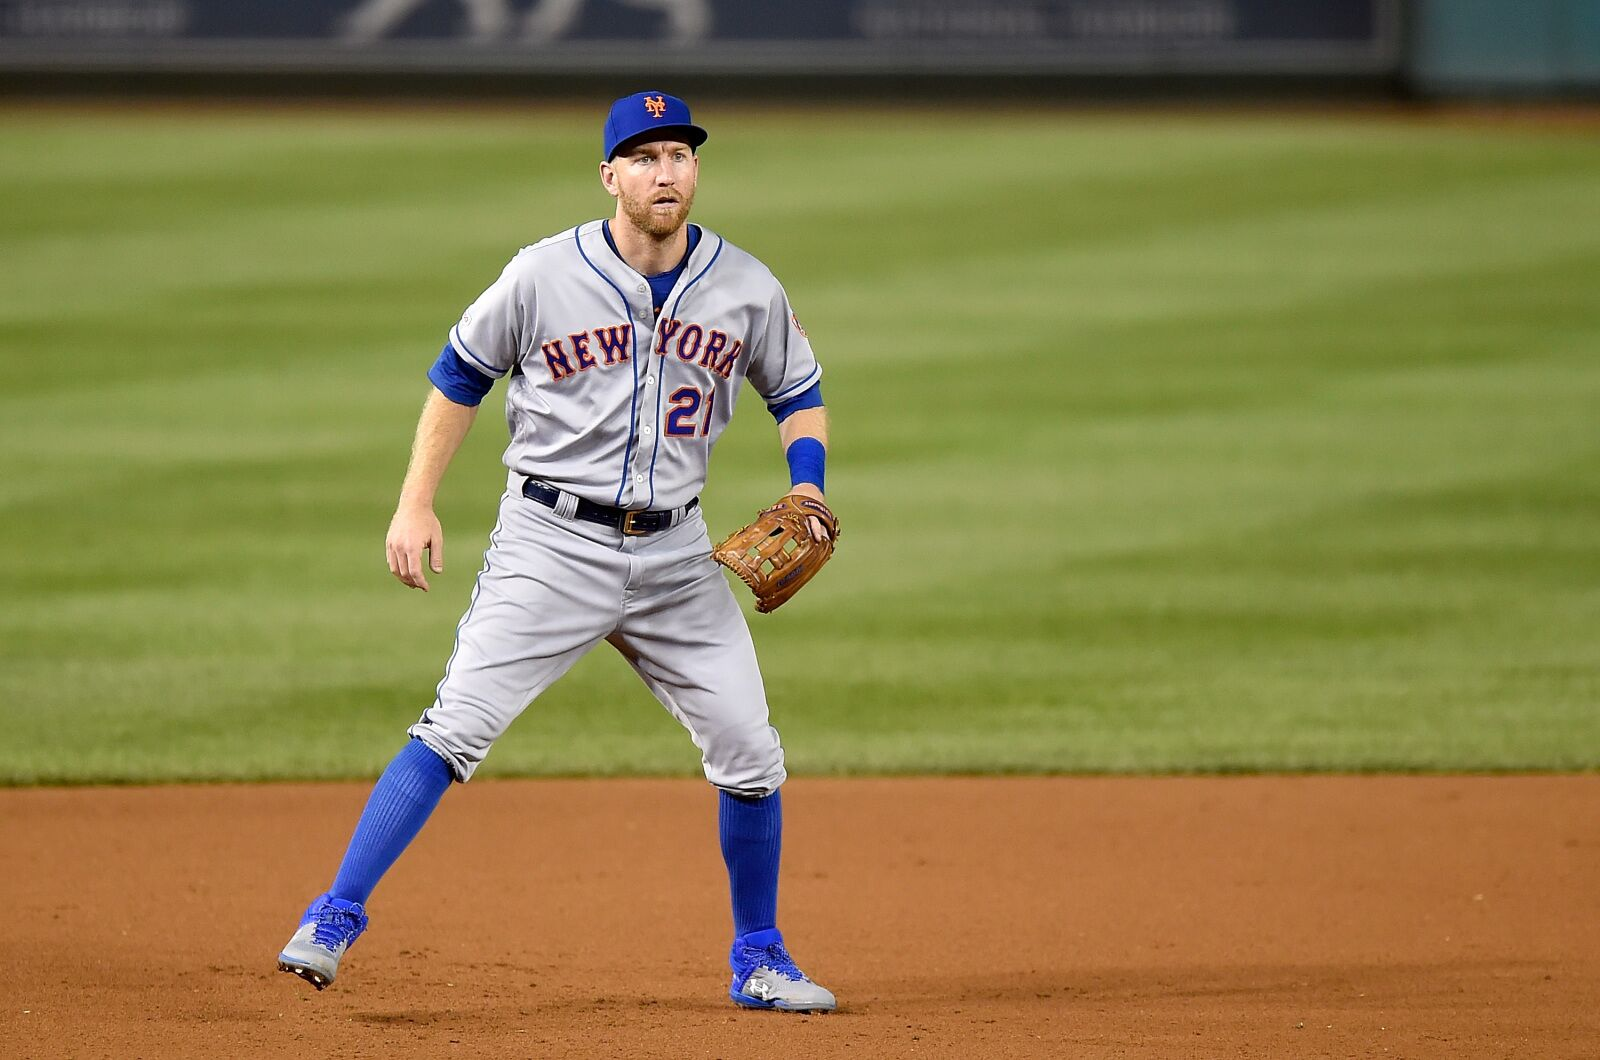 Texas Rangers reportedly turning to Todd Frazier in free agent hunt